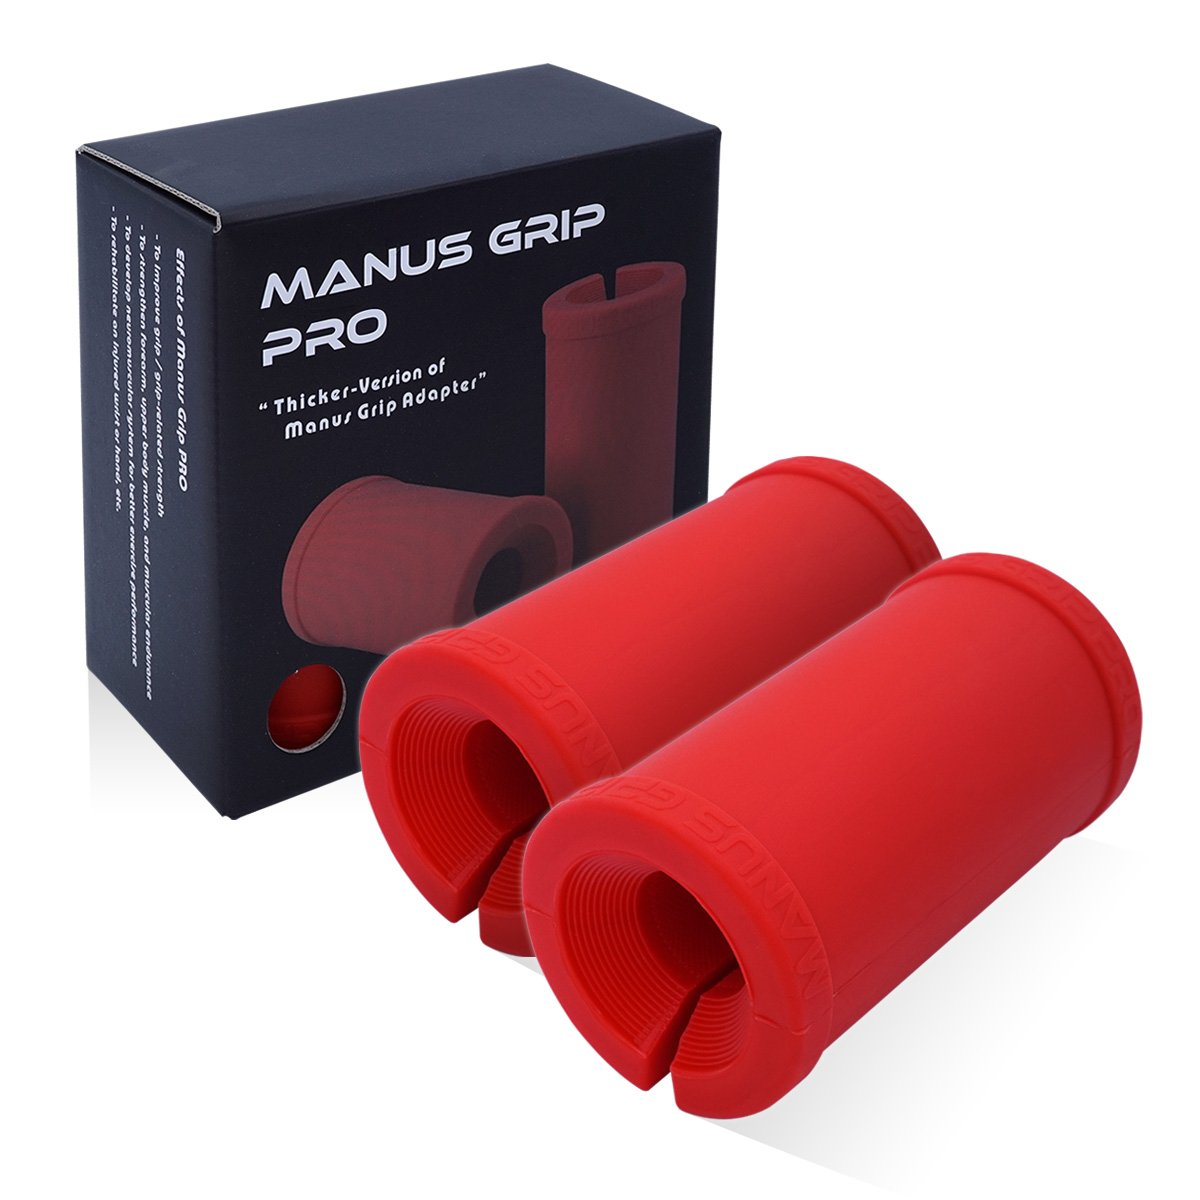 Joagym Fat Bar Training Manus Grip Pro - The Best Powerful Arm, Biceps, Triceps, and Chest Muscle Strength Growth Builder